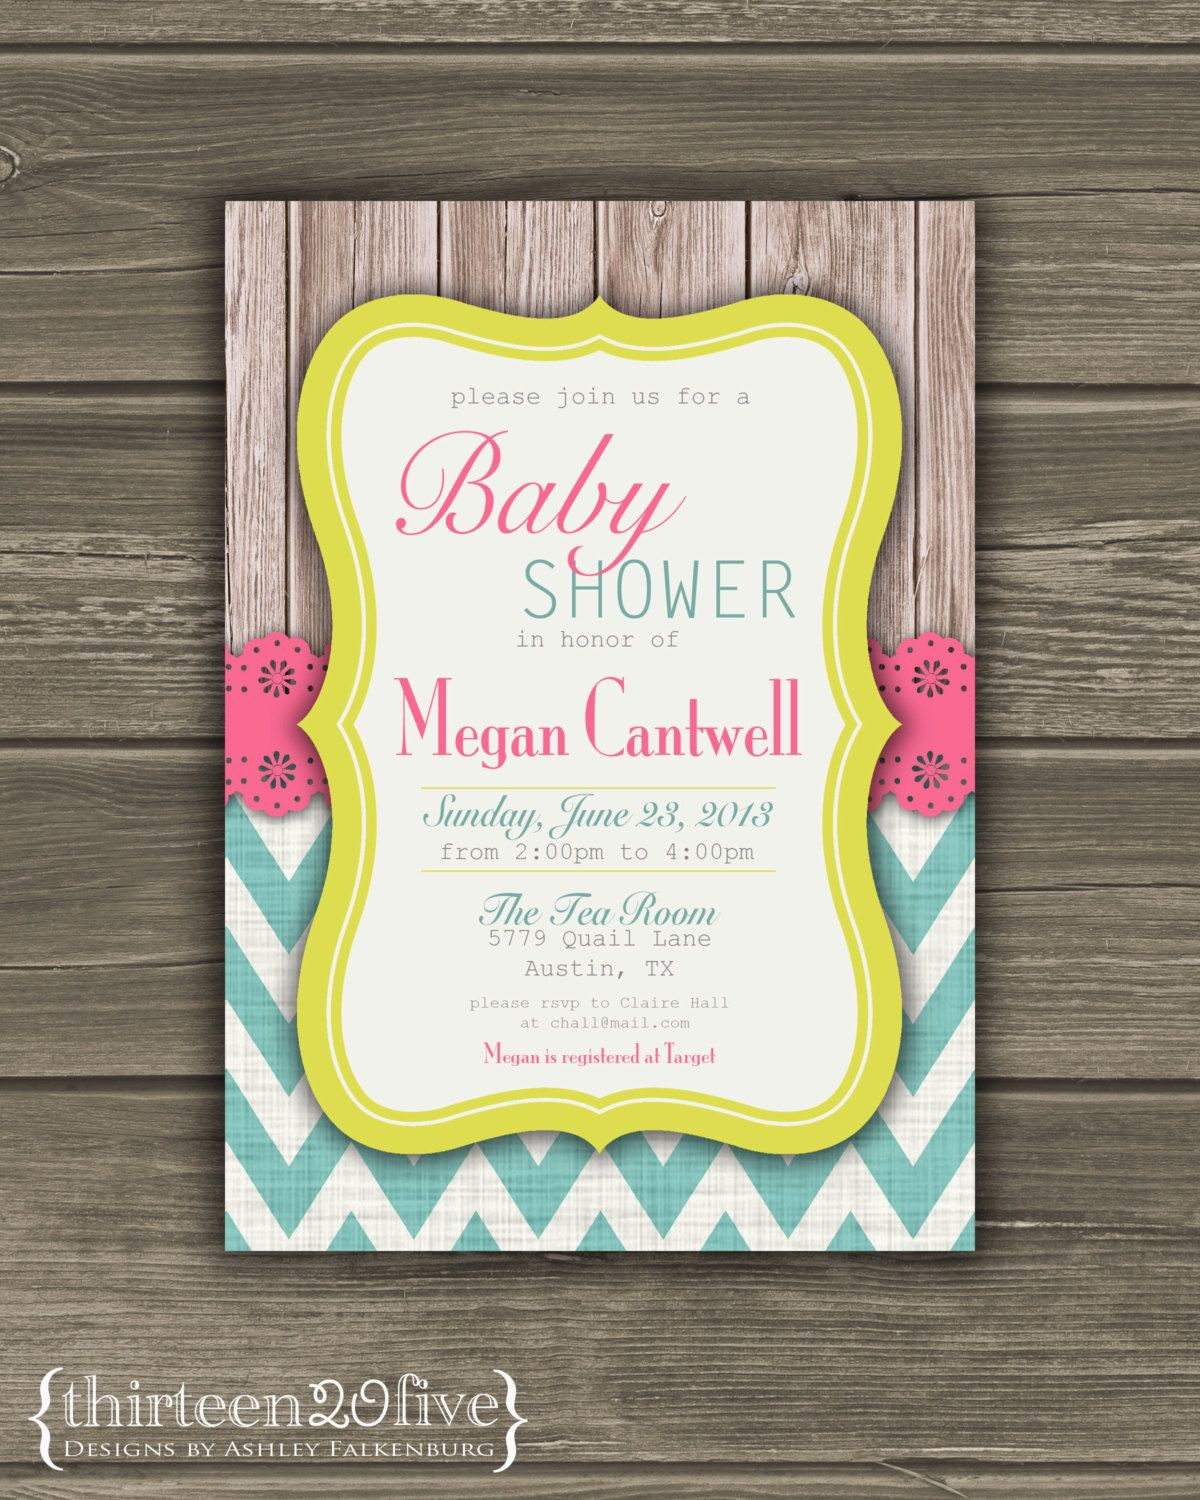 Chevron Baby Shower Invitation Pink Teal Yellow by Thirteen20Five, $10.00